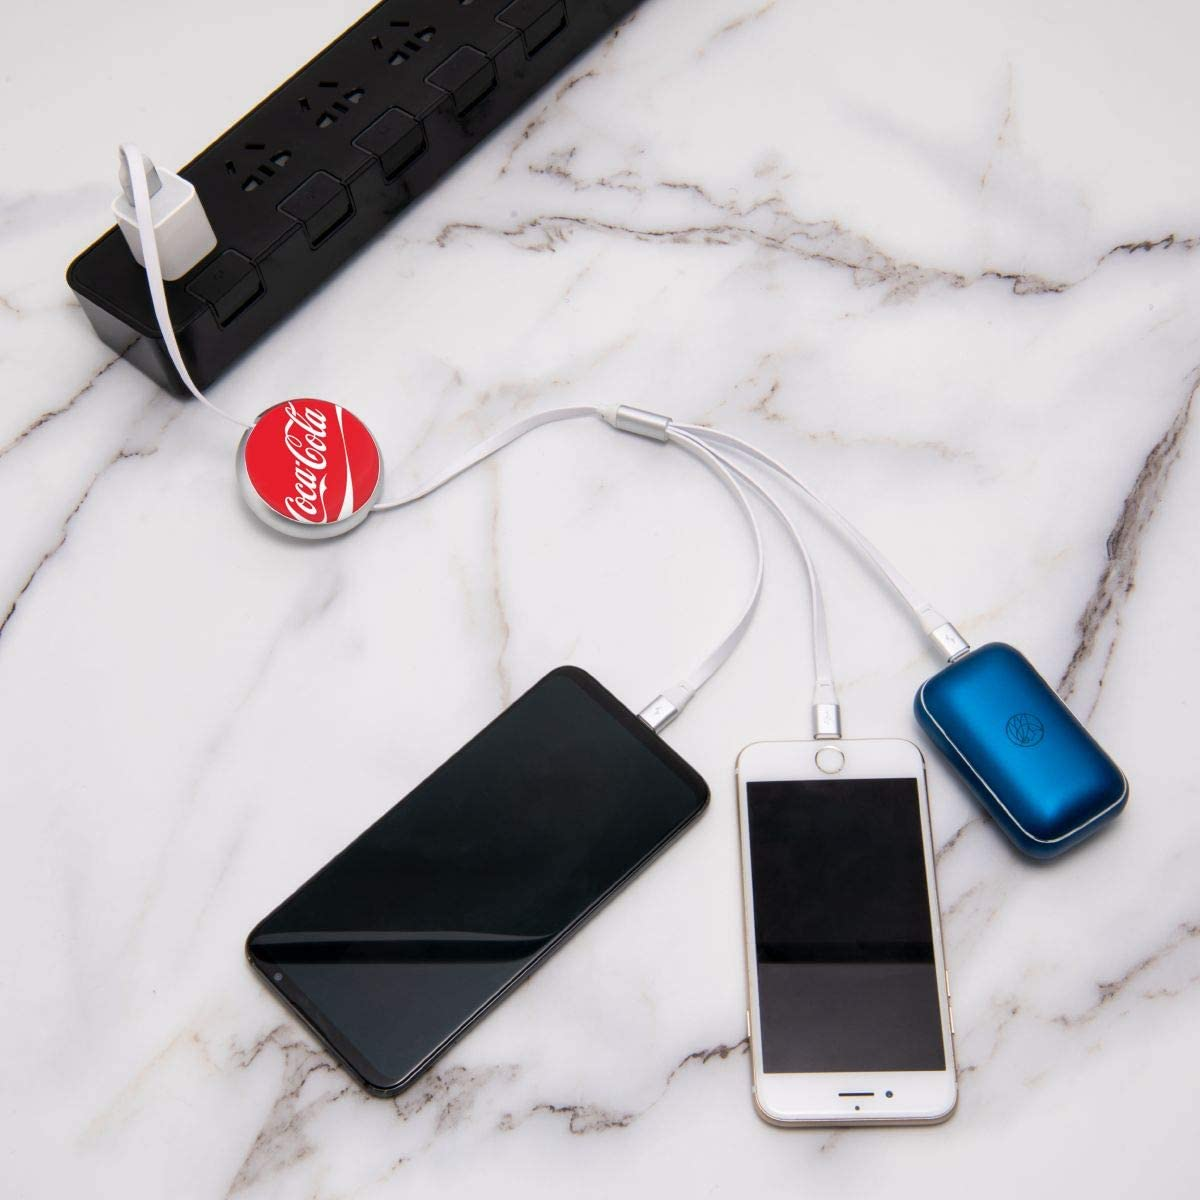 N//C Coca-Cola Anime Round Three-in-One Charging Cable TPE Cable Pc Surface Aluminum Alloy Shell